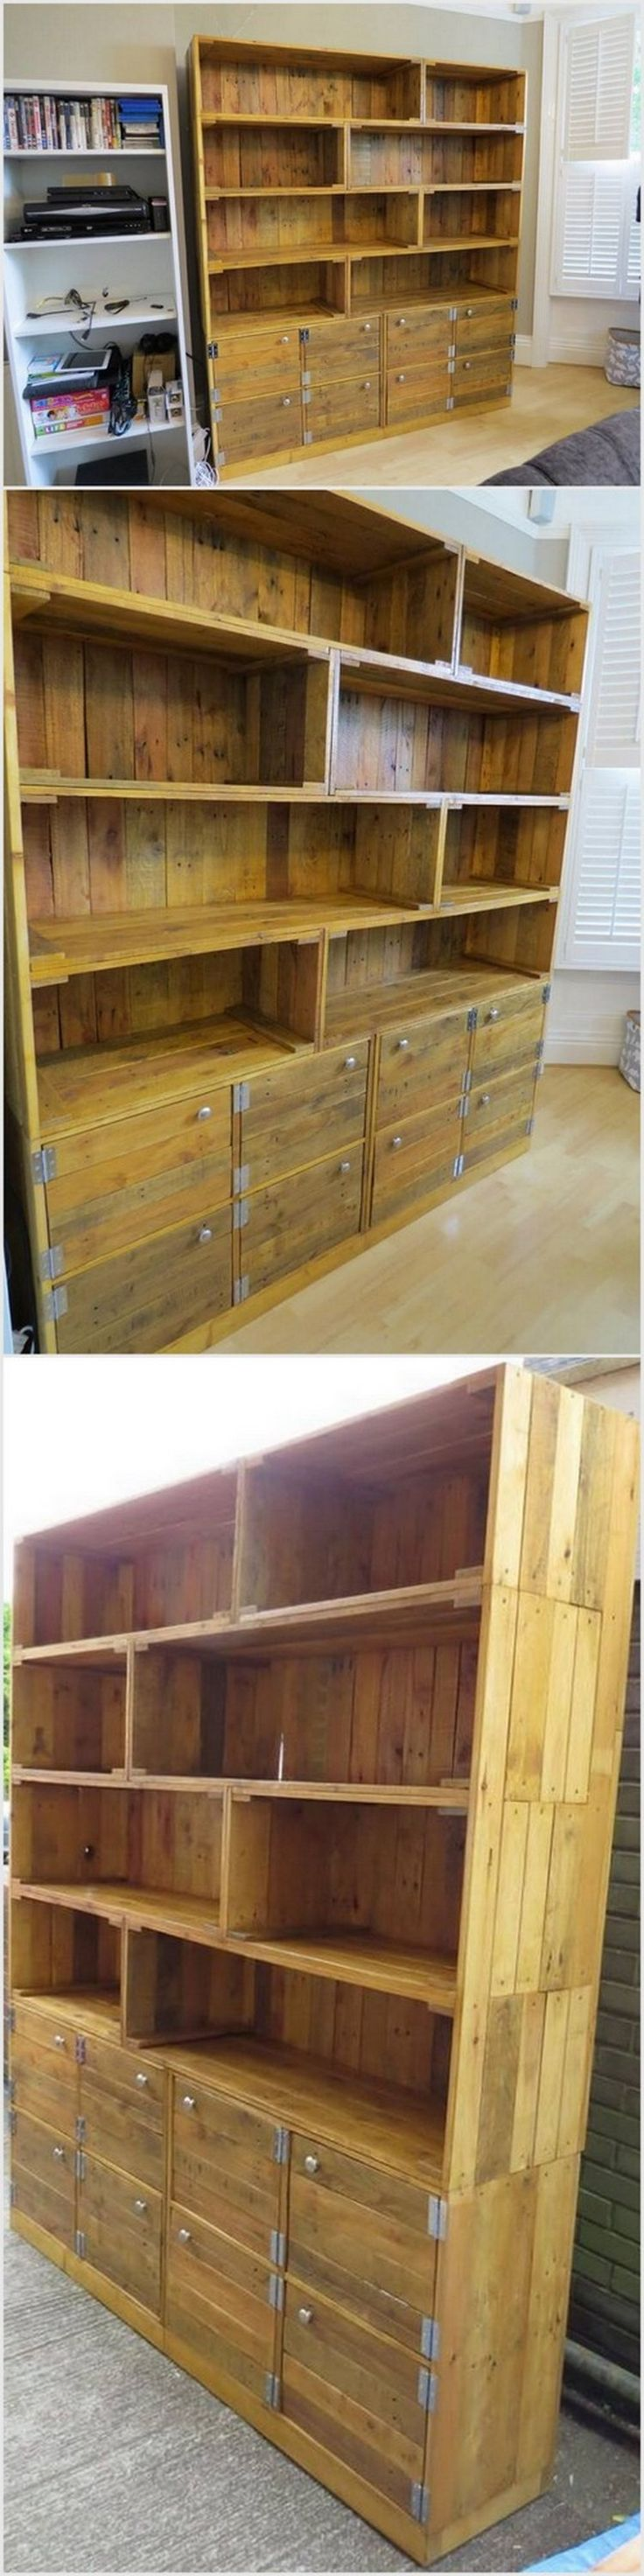 Top Best Wooden Pallet Projects I and